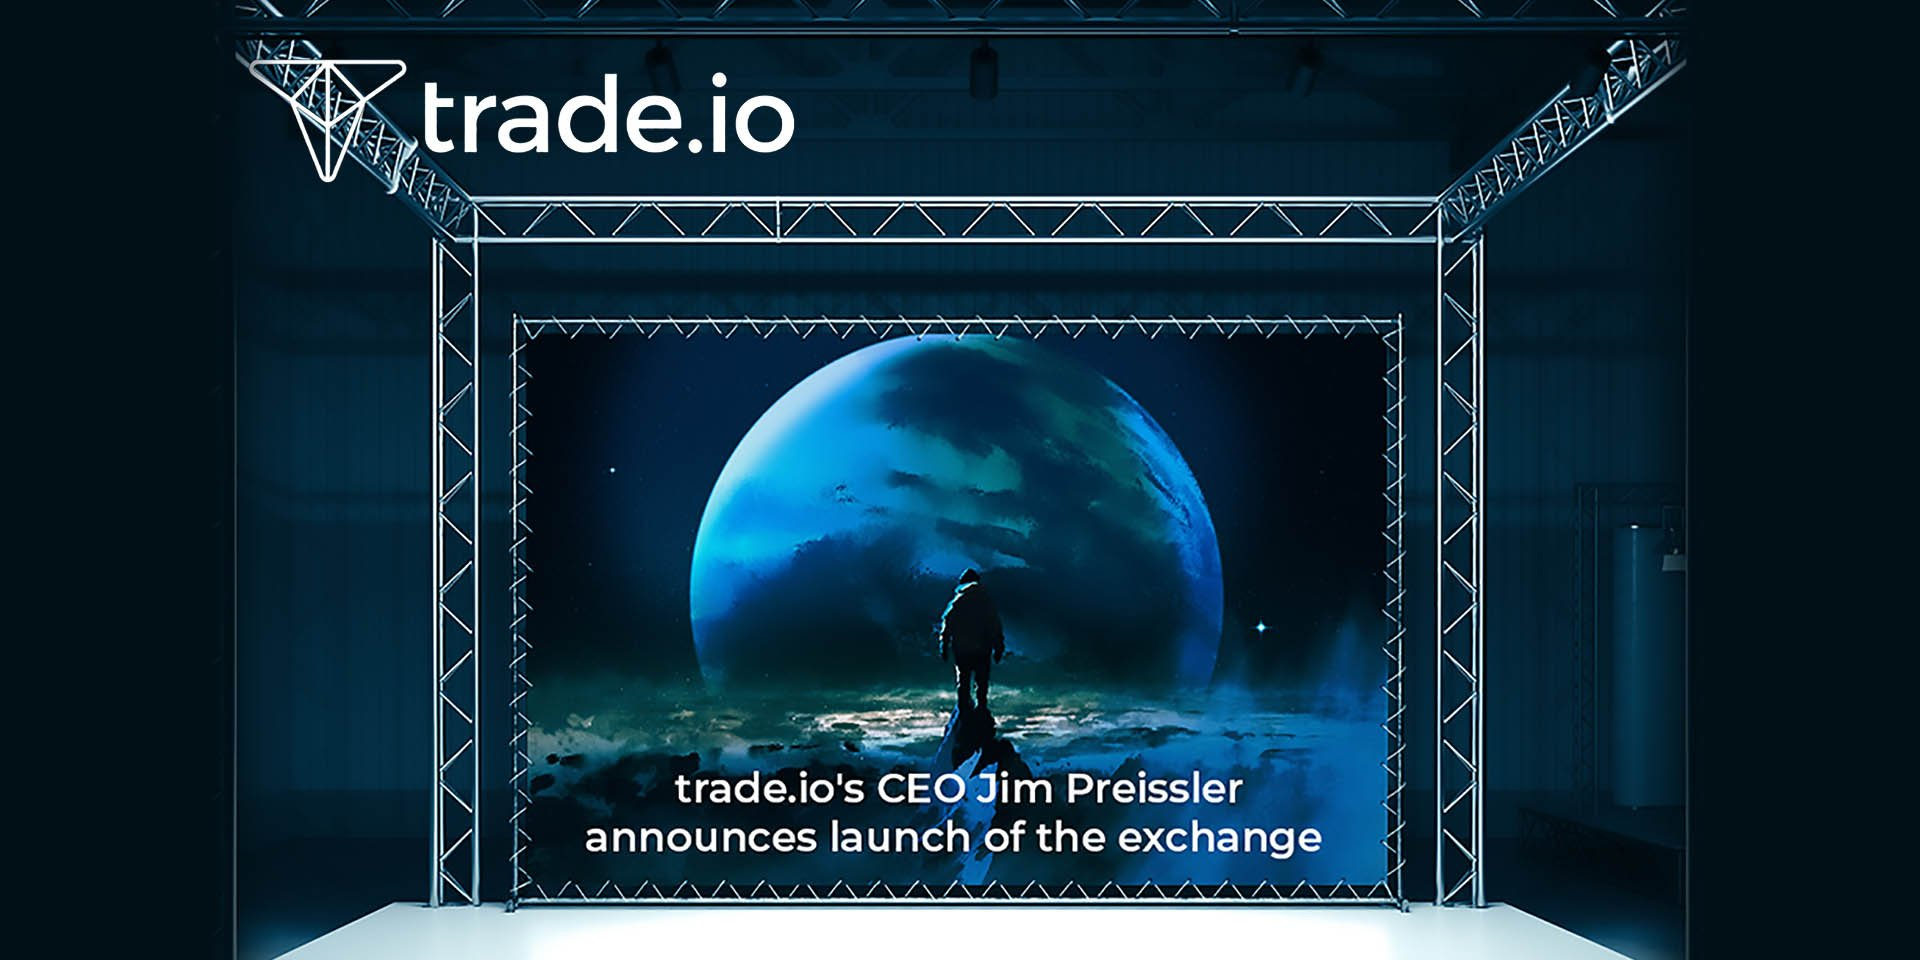 trade.io Announces Official Launch Of Its Highly Anticipated, Customizable Crypto Exchange at Simultaneous London Events